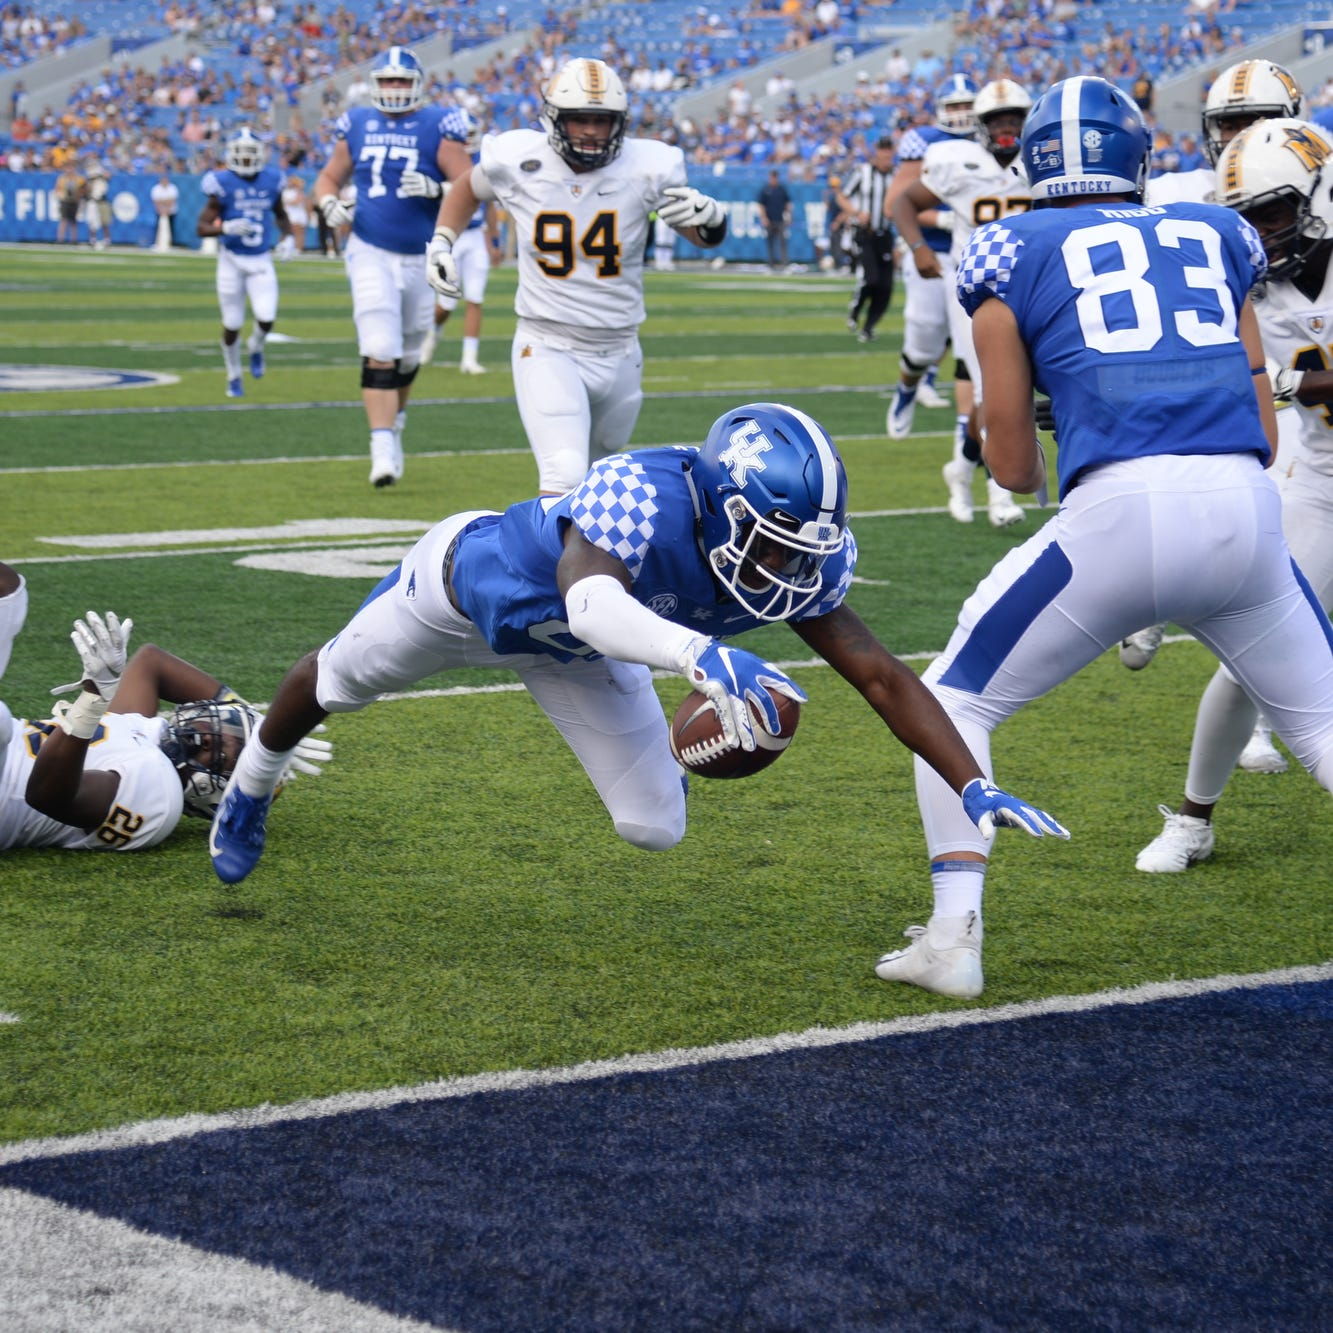 Instead of junior college, Allen Dailey is catching touchdowns for UK